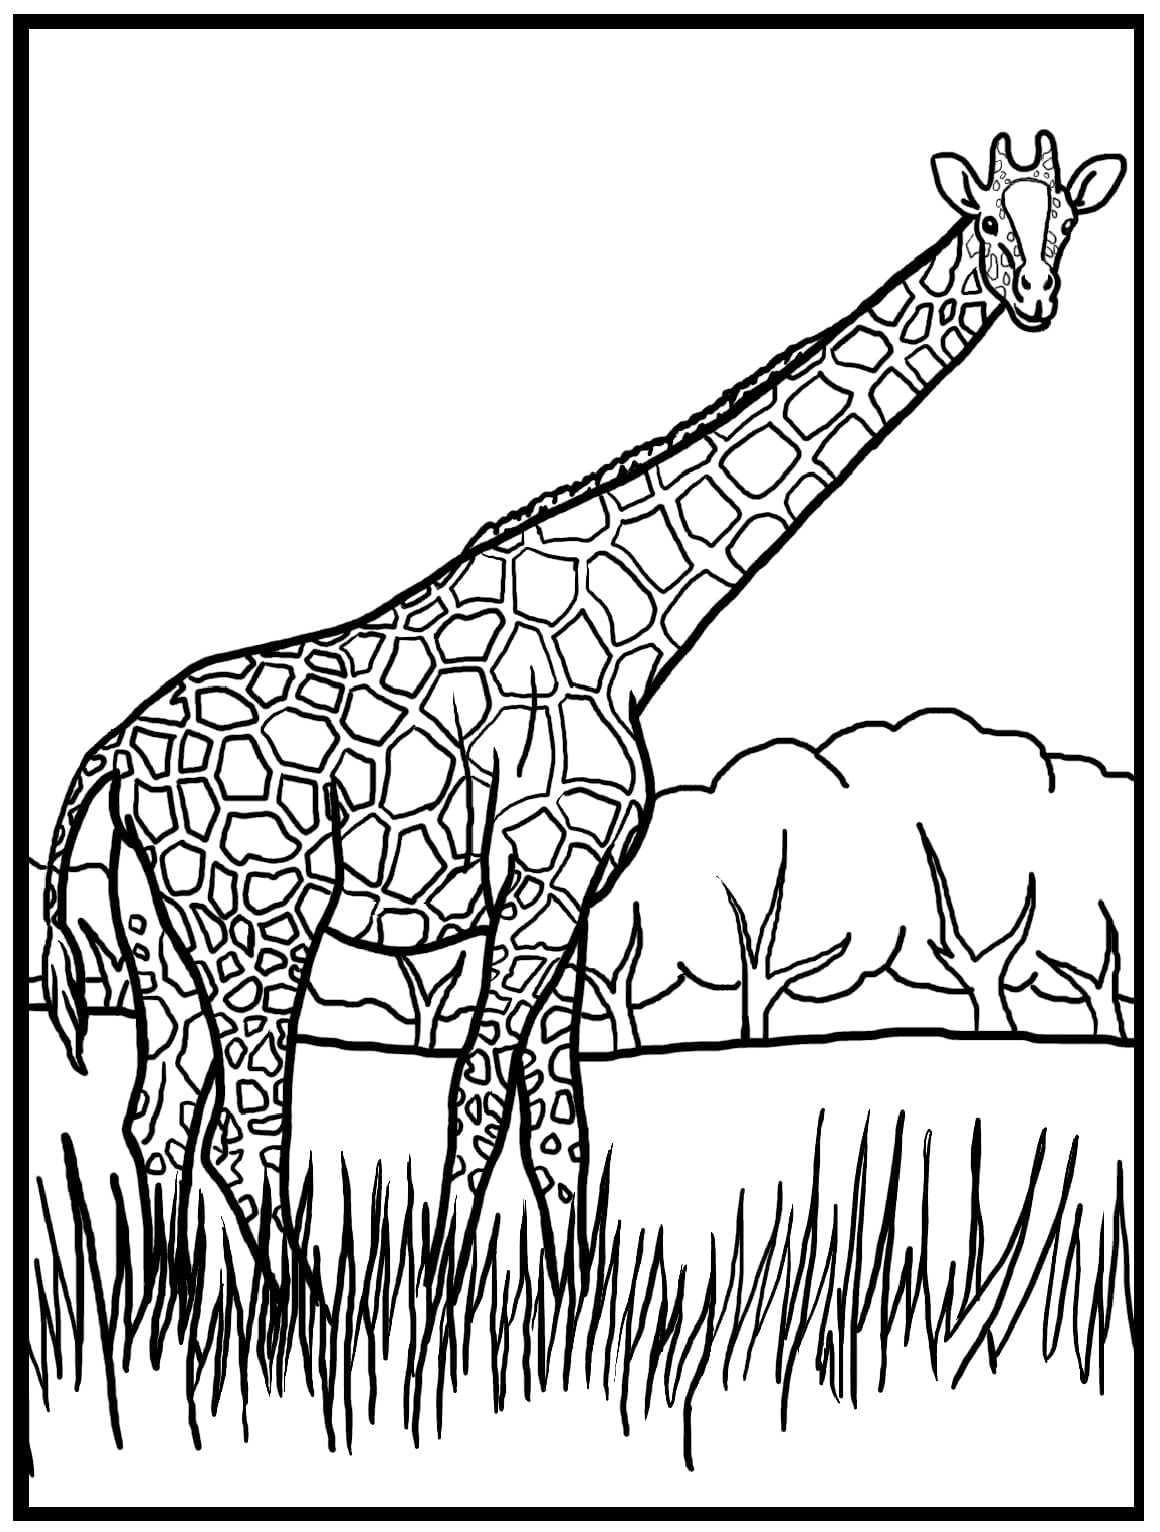 Stunning Giraffe Color Page With Giraffe Coloring Pages On With Hd